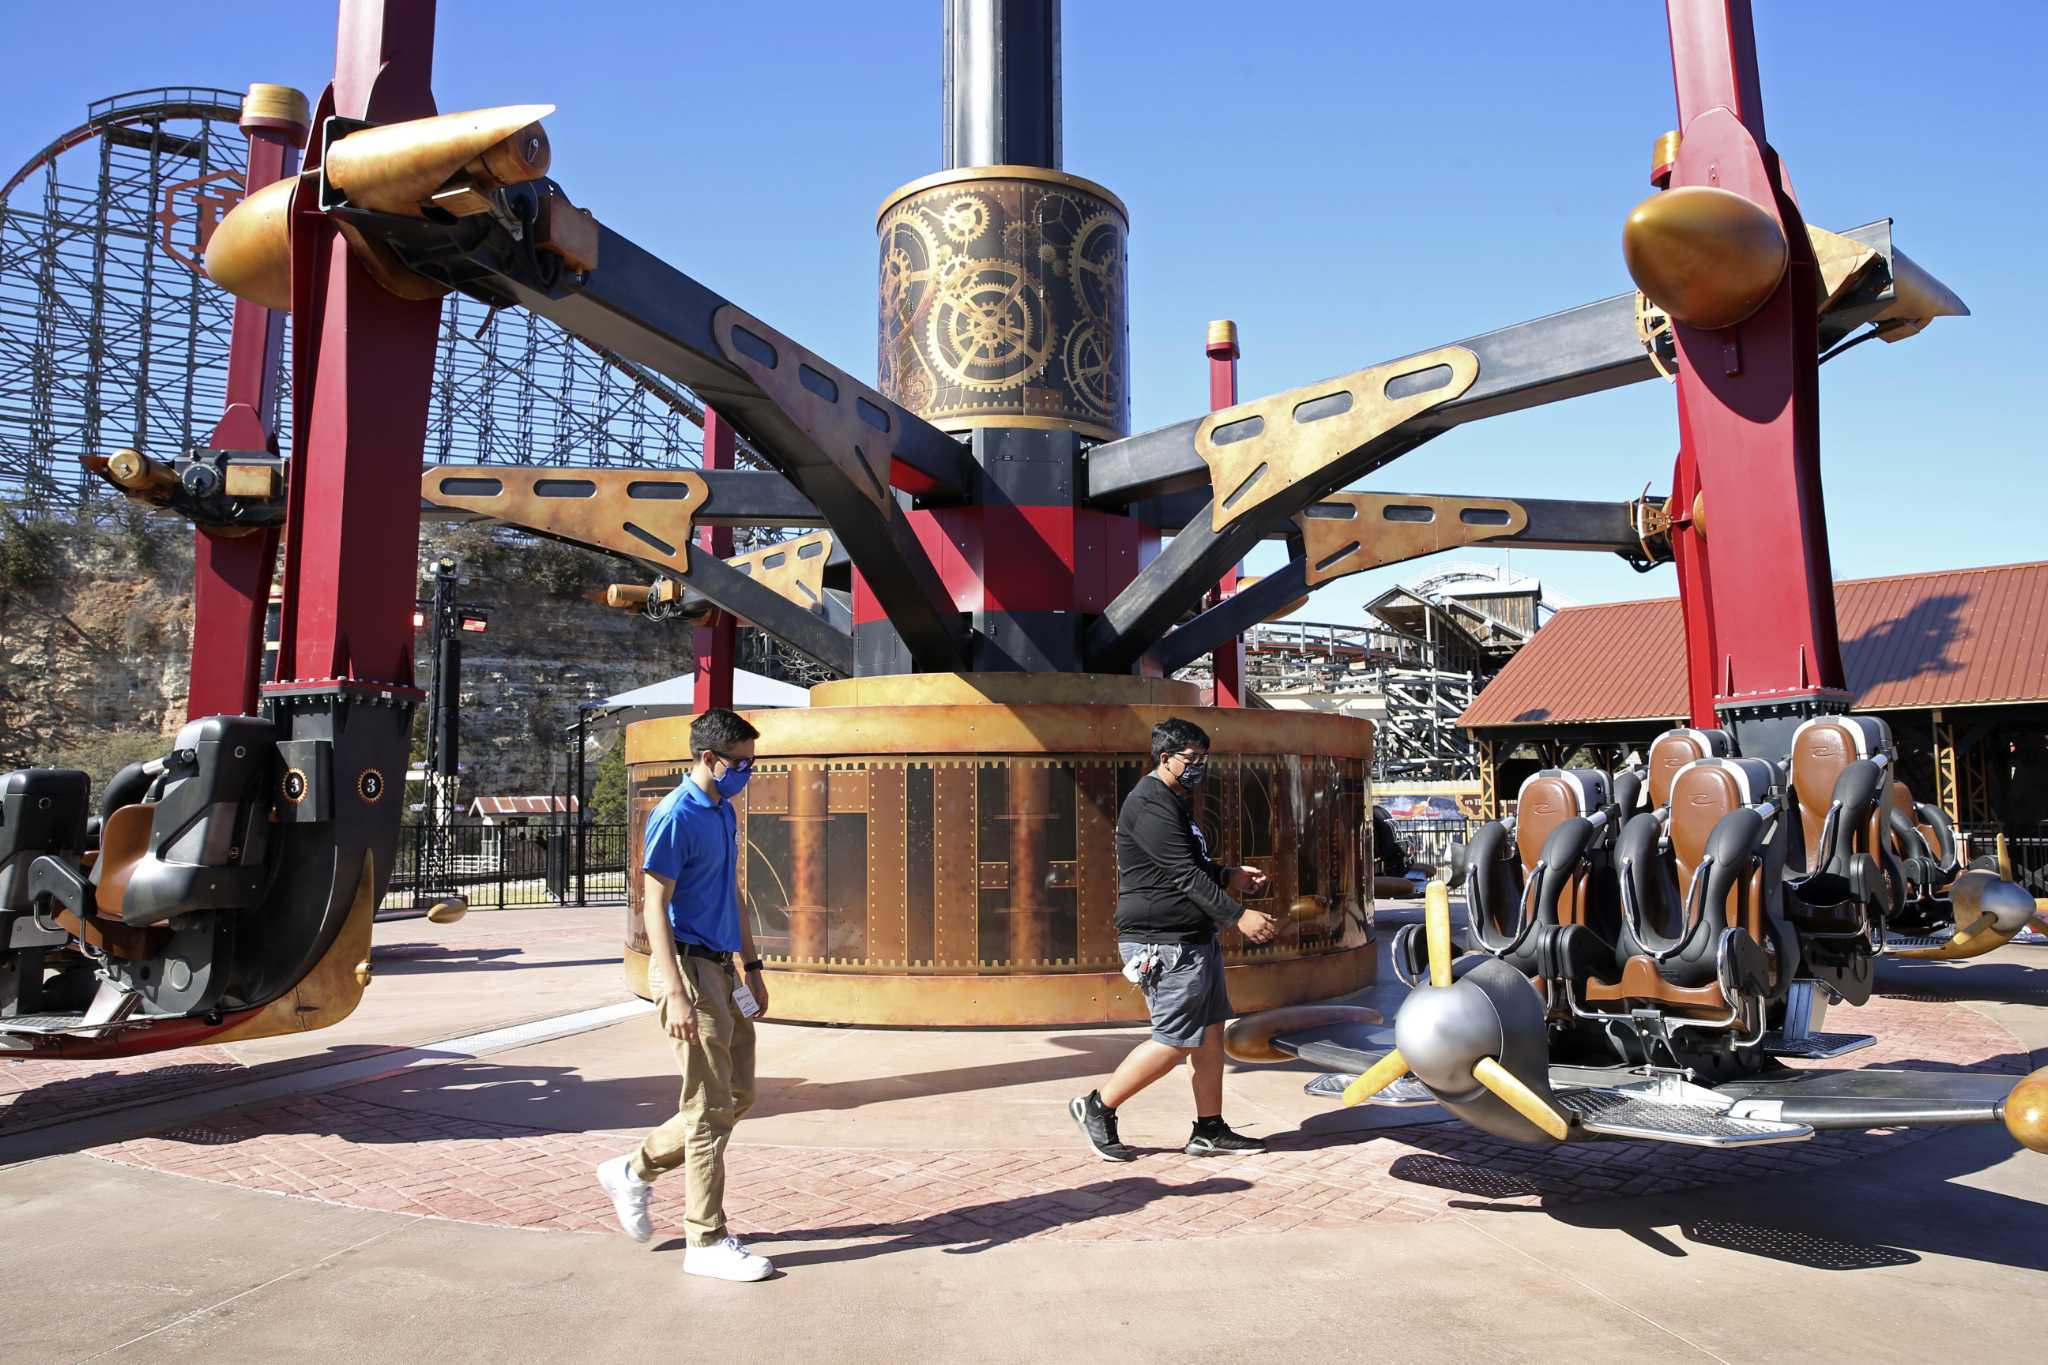 New San Antonio rides, attractions at Sea World and Six Flags Fiesta Texas